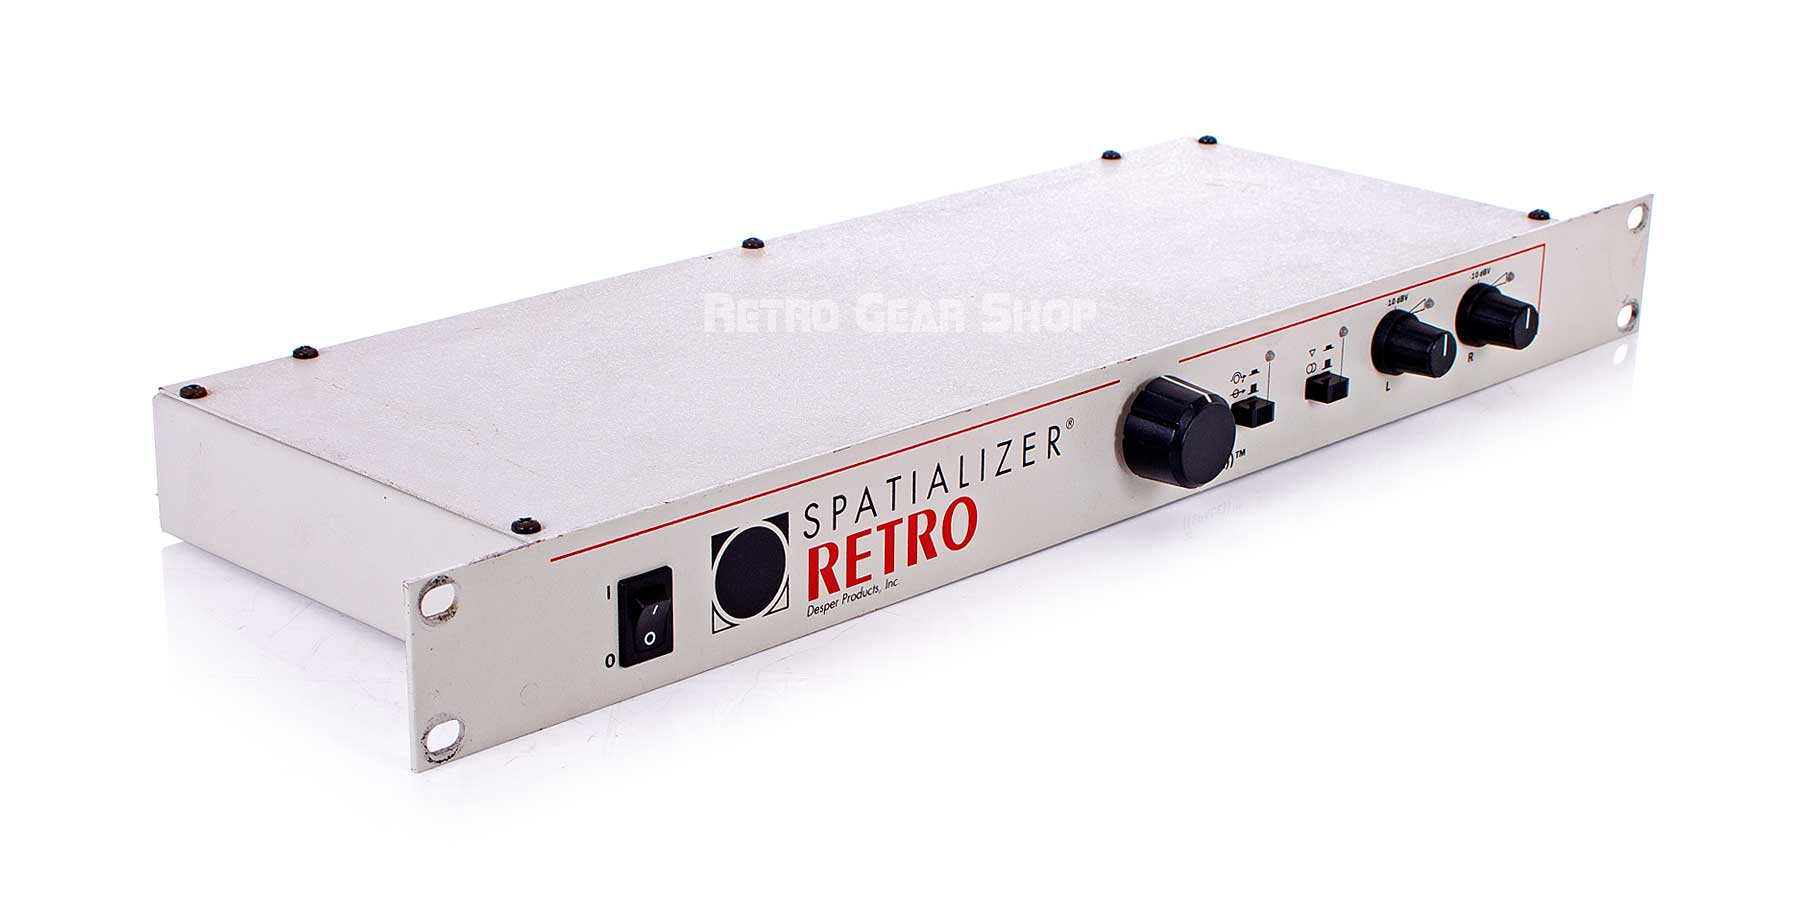 Desper Spatializer Retro SR-1 Top Left